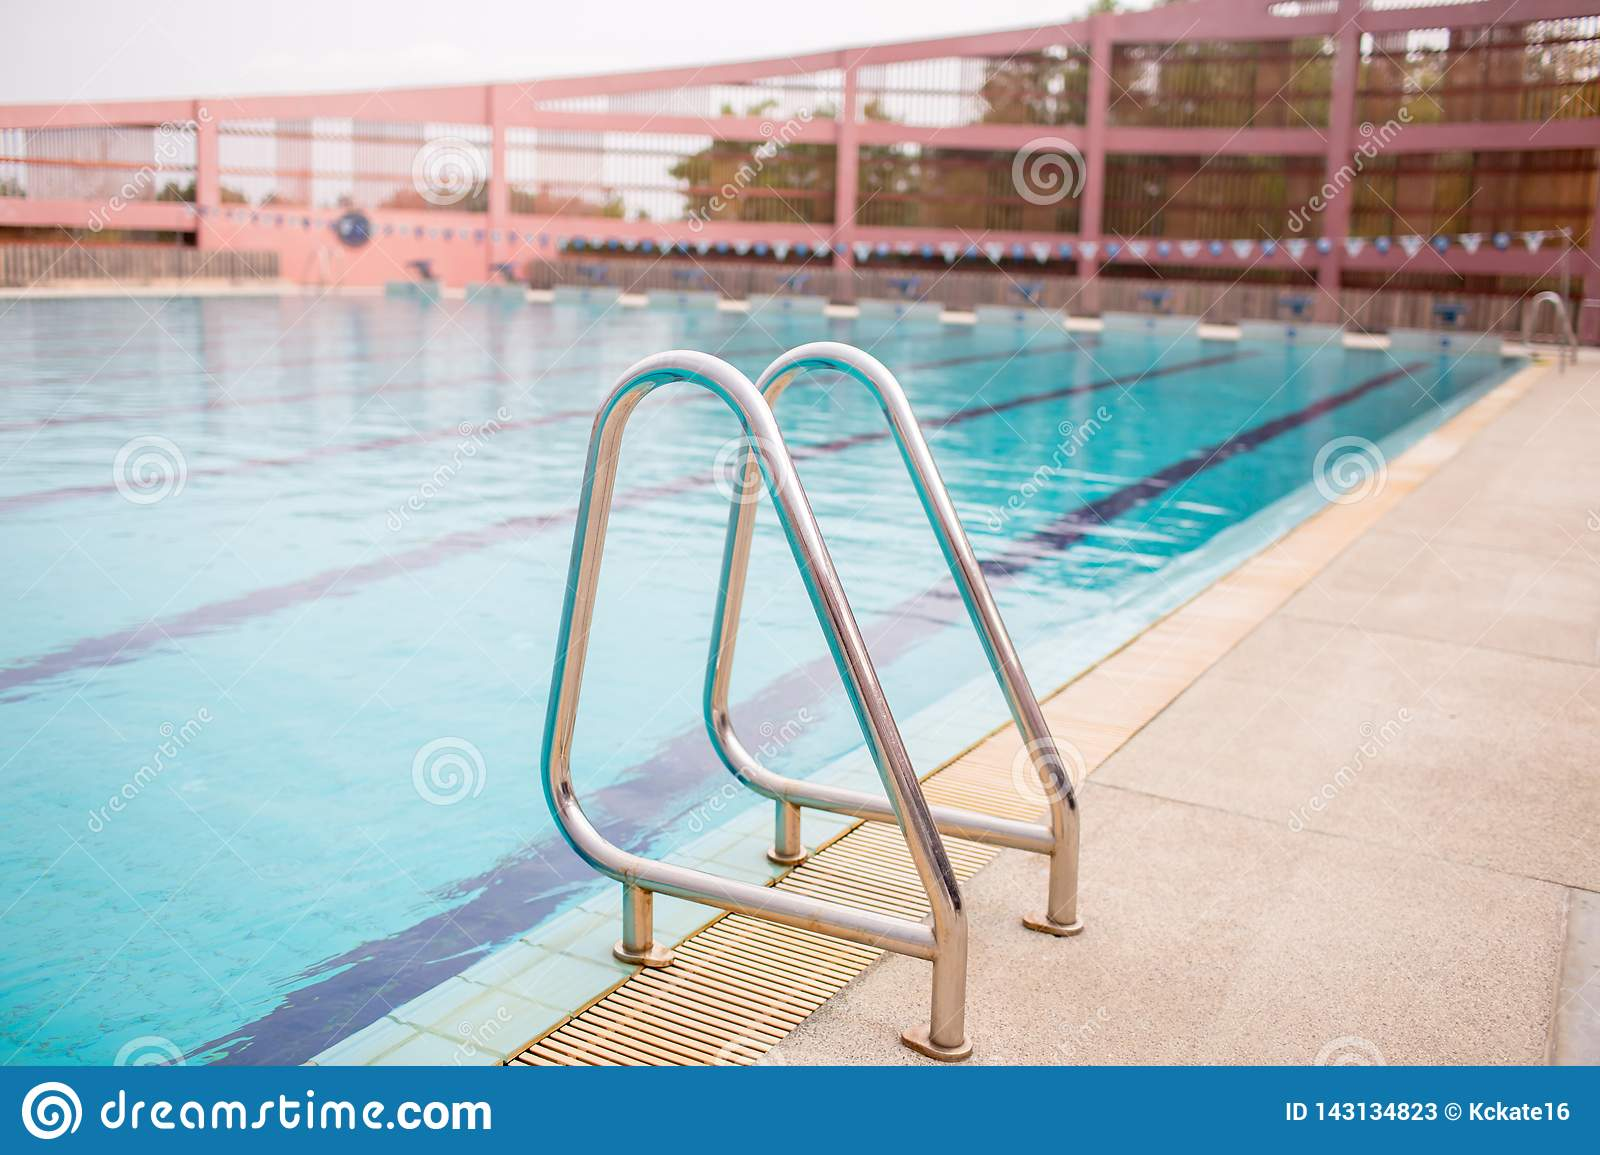 Ladder stainless handrails for descent into swimming pool. Swimming pool with handrail.